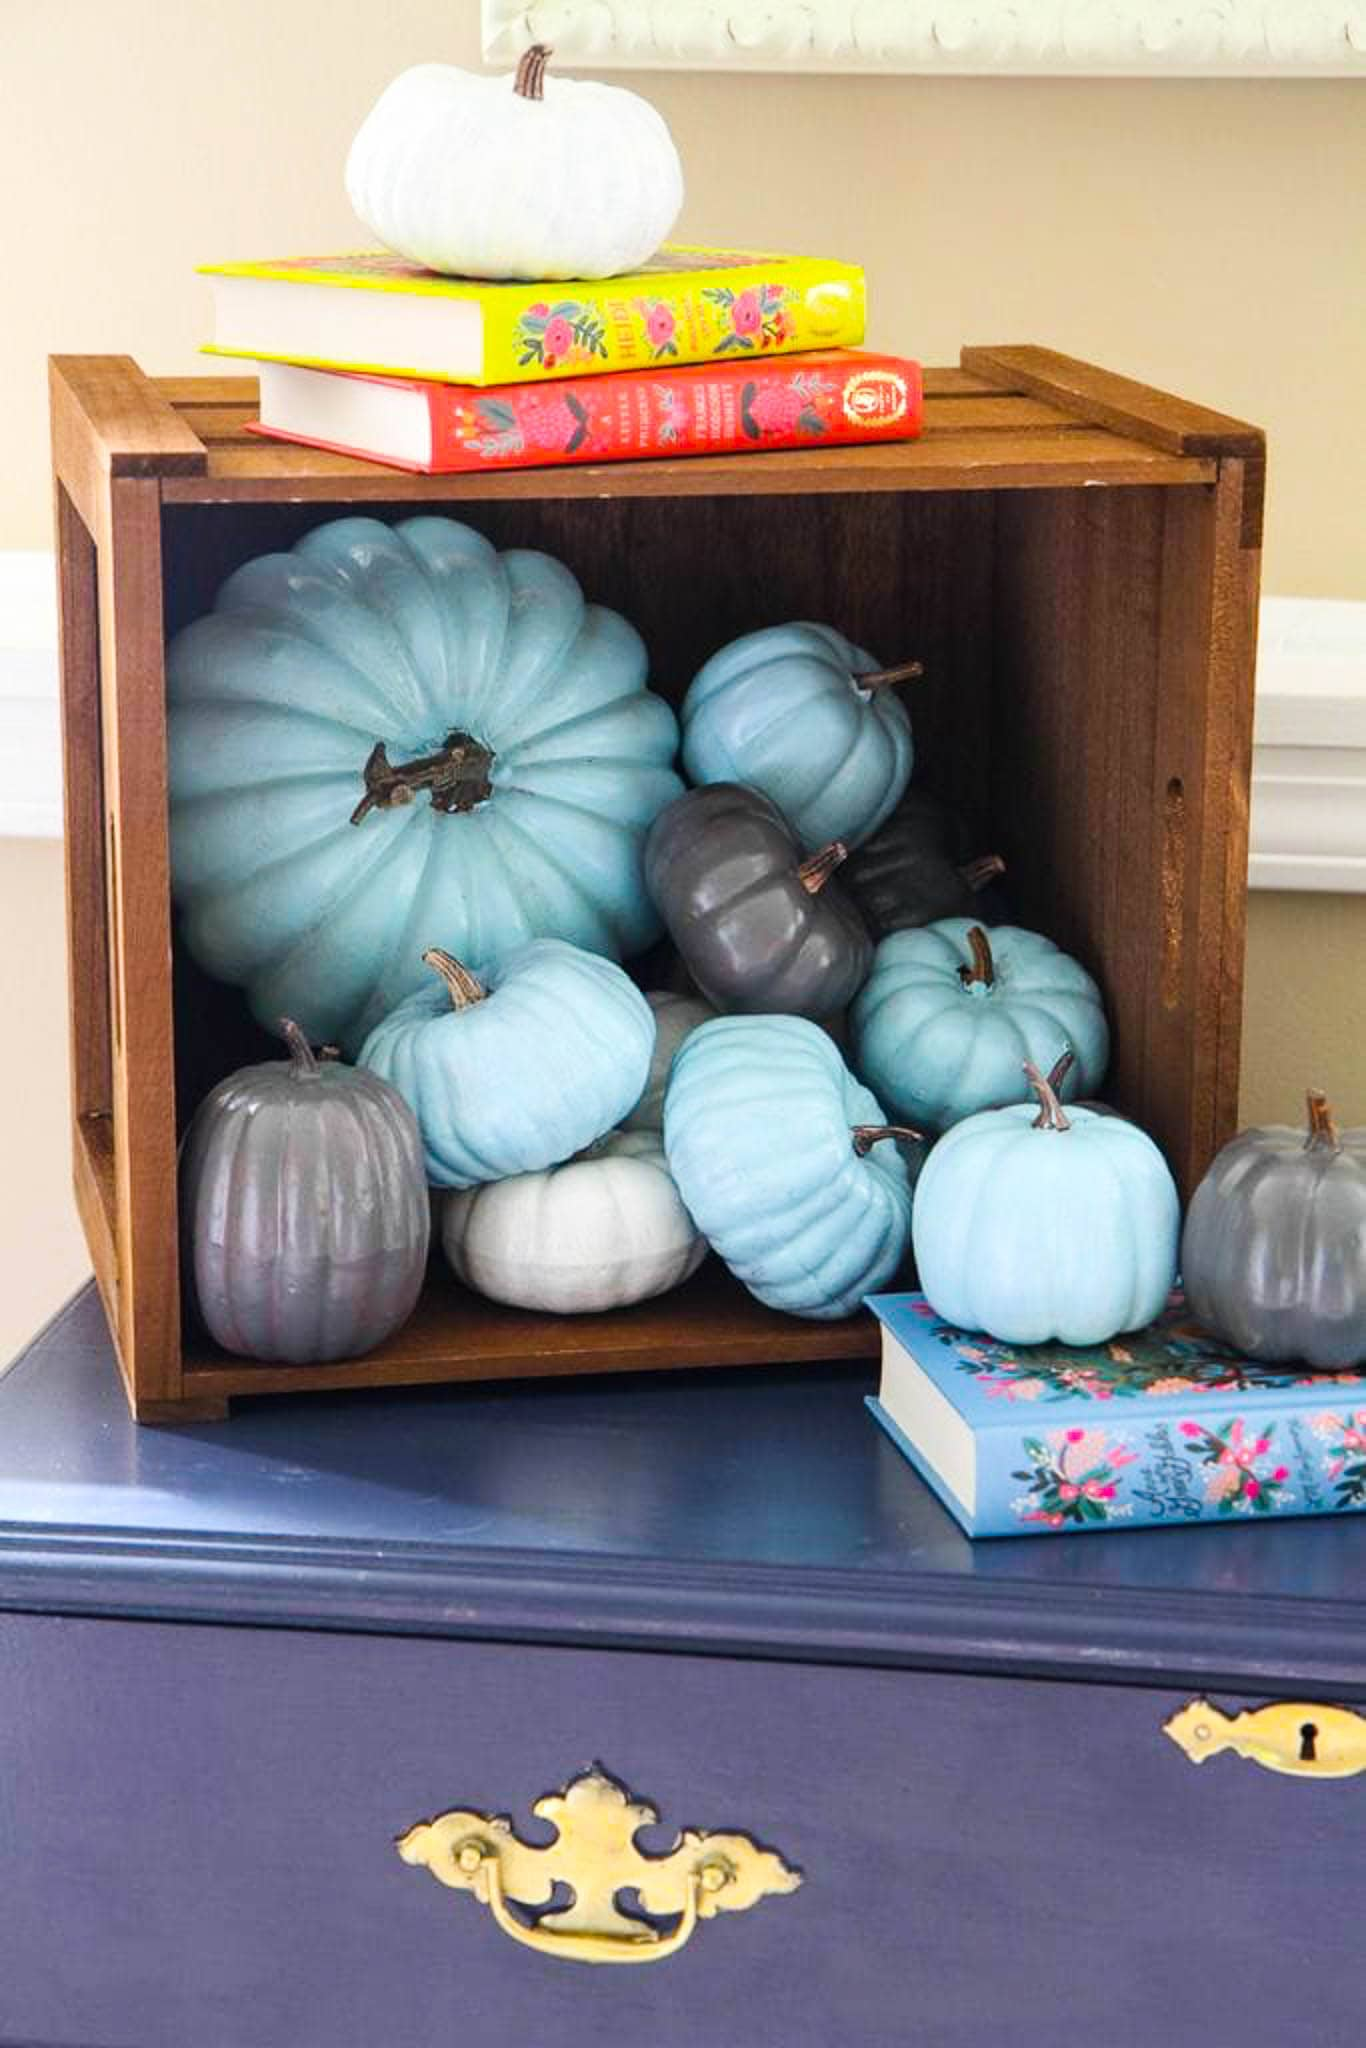 1569497091 243 how to paint pumpkins and turn them into lovely fall decorations - How To Paint Pumpkins And Turn Them Into Lovely Fall Decorations